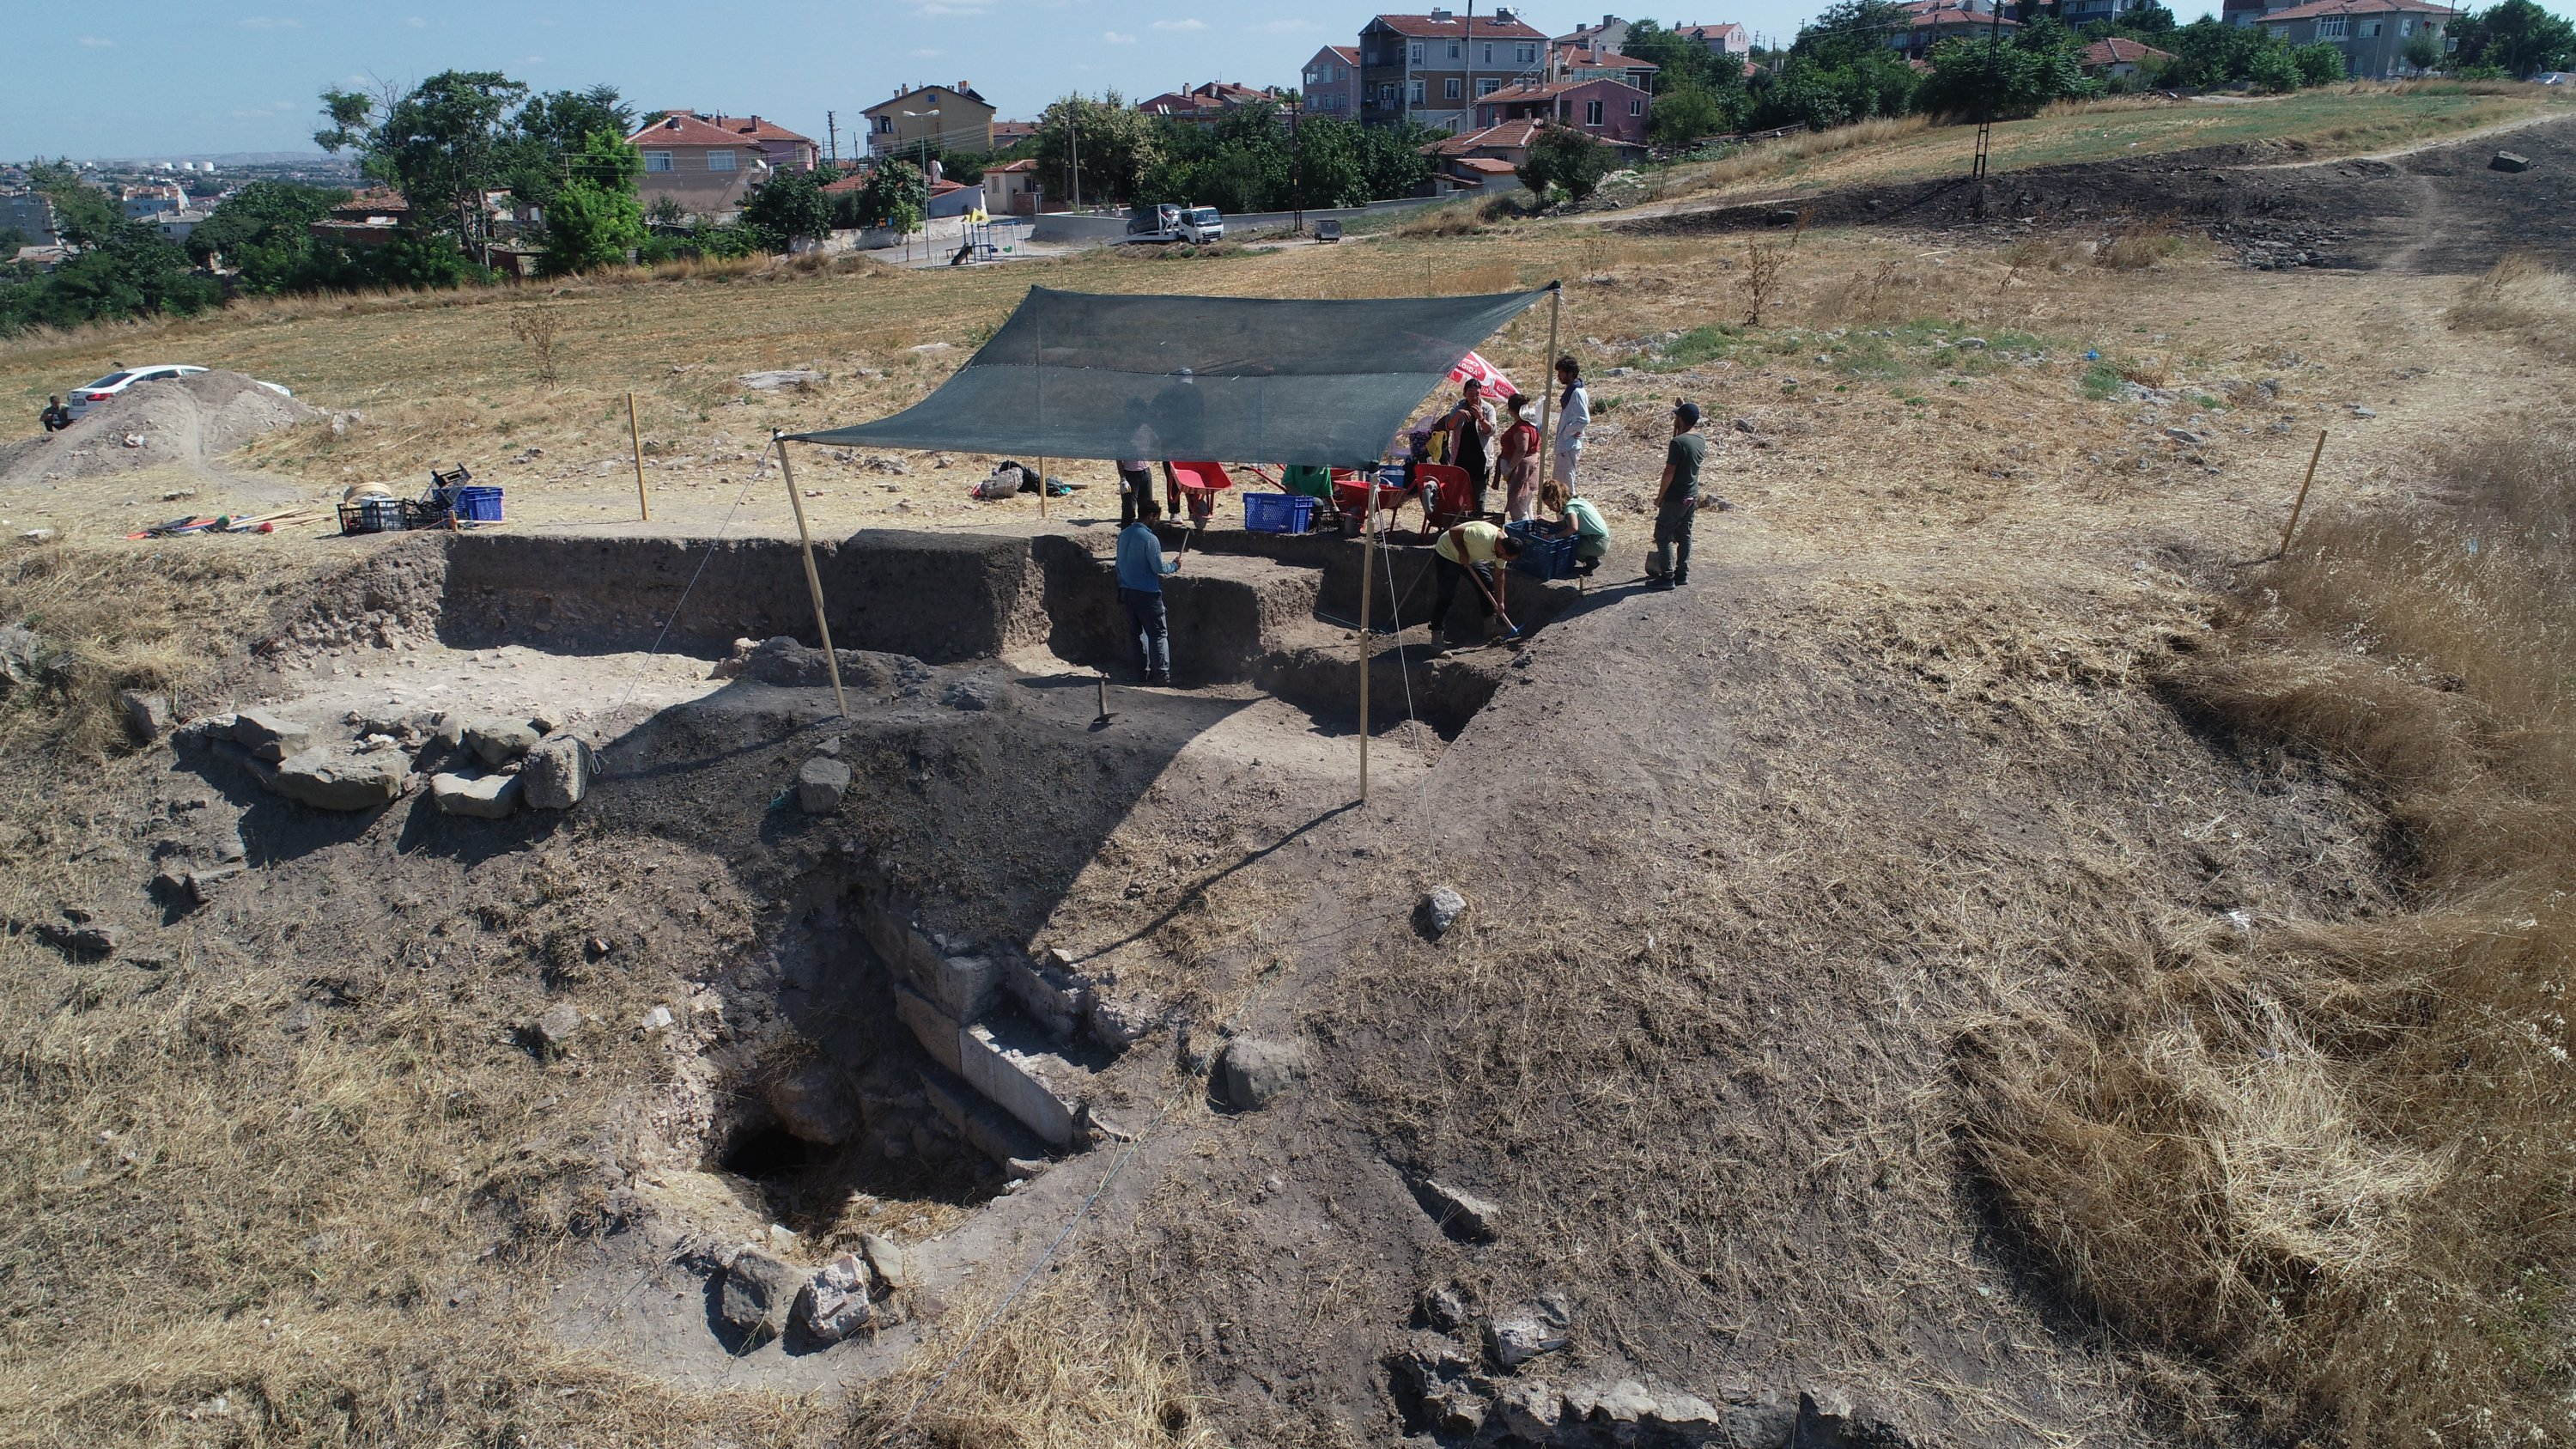 Archaeologists and experts work in the ancient city of Perinthos, Tekirdağ, northwestern Turkey, August 20, 2021. (AA Photo)